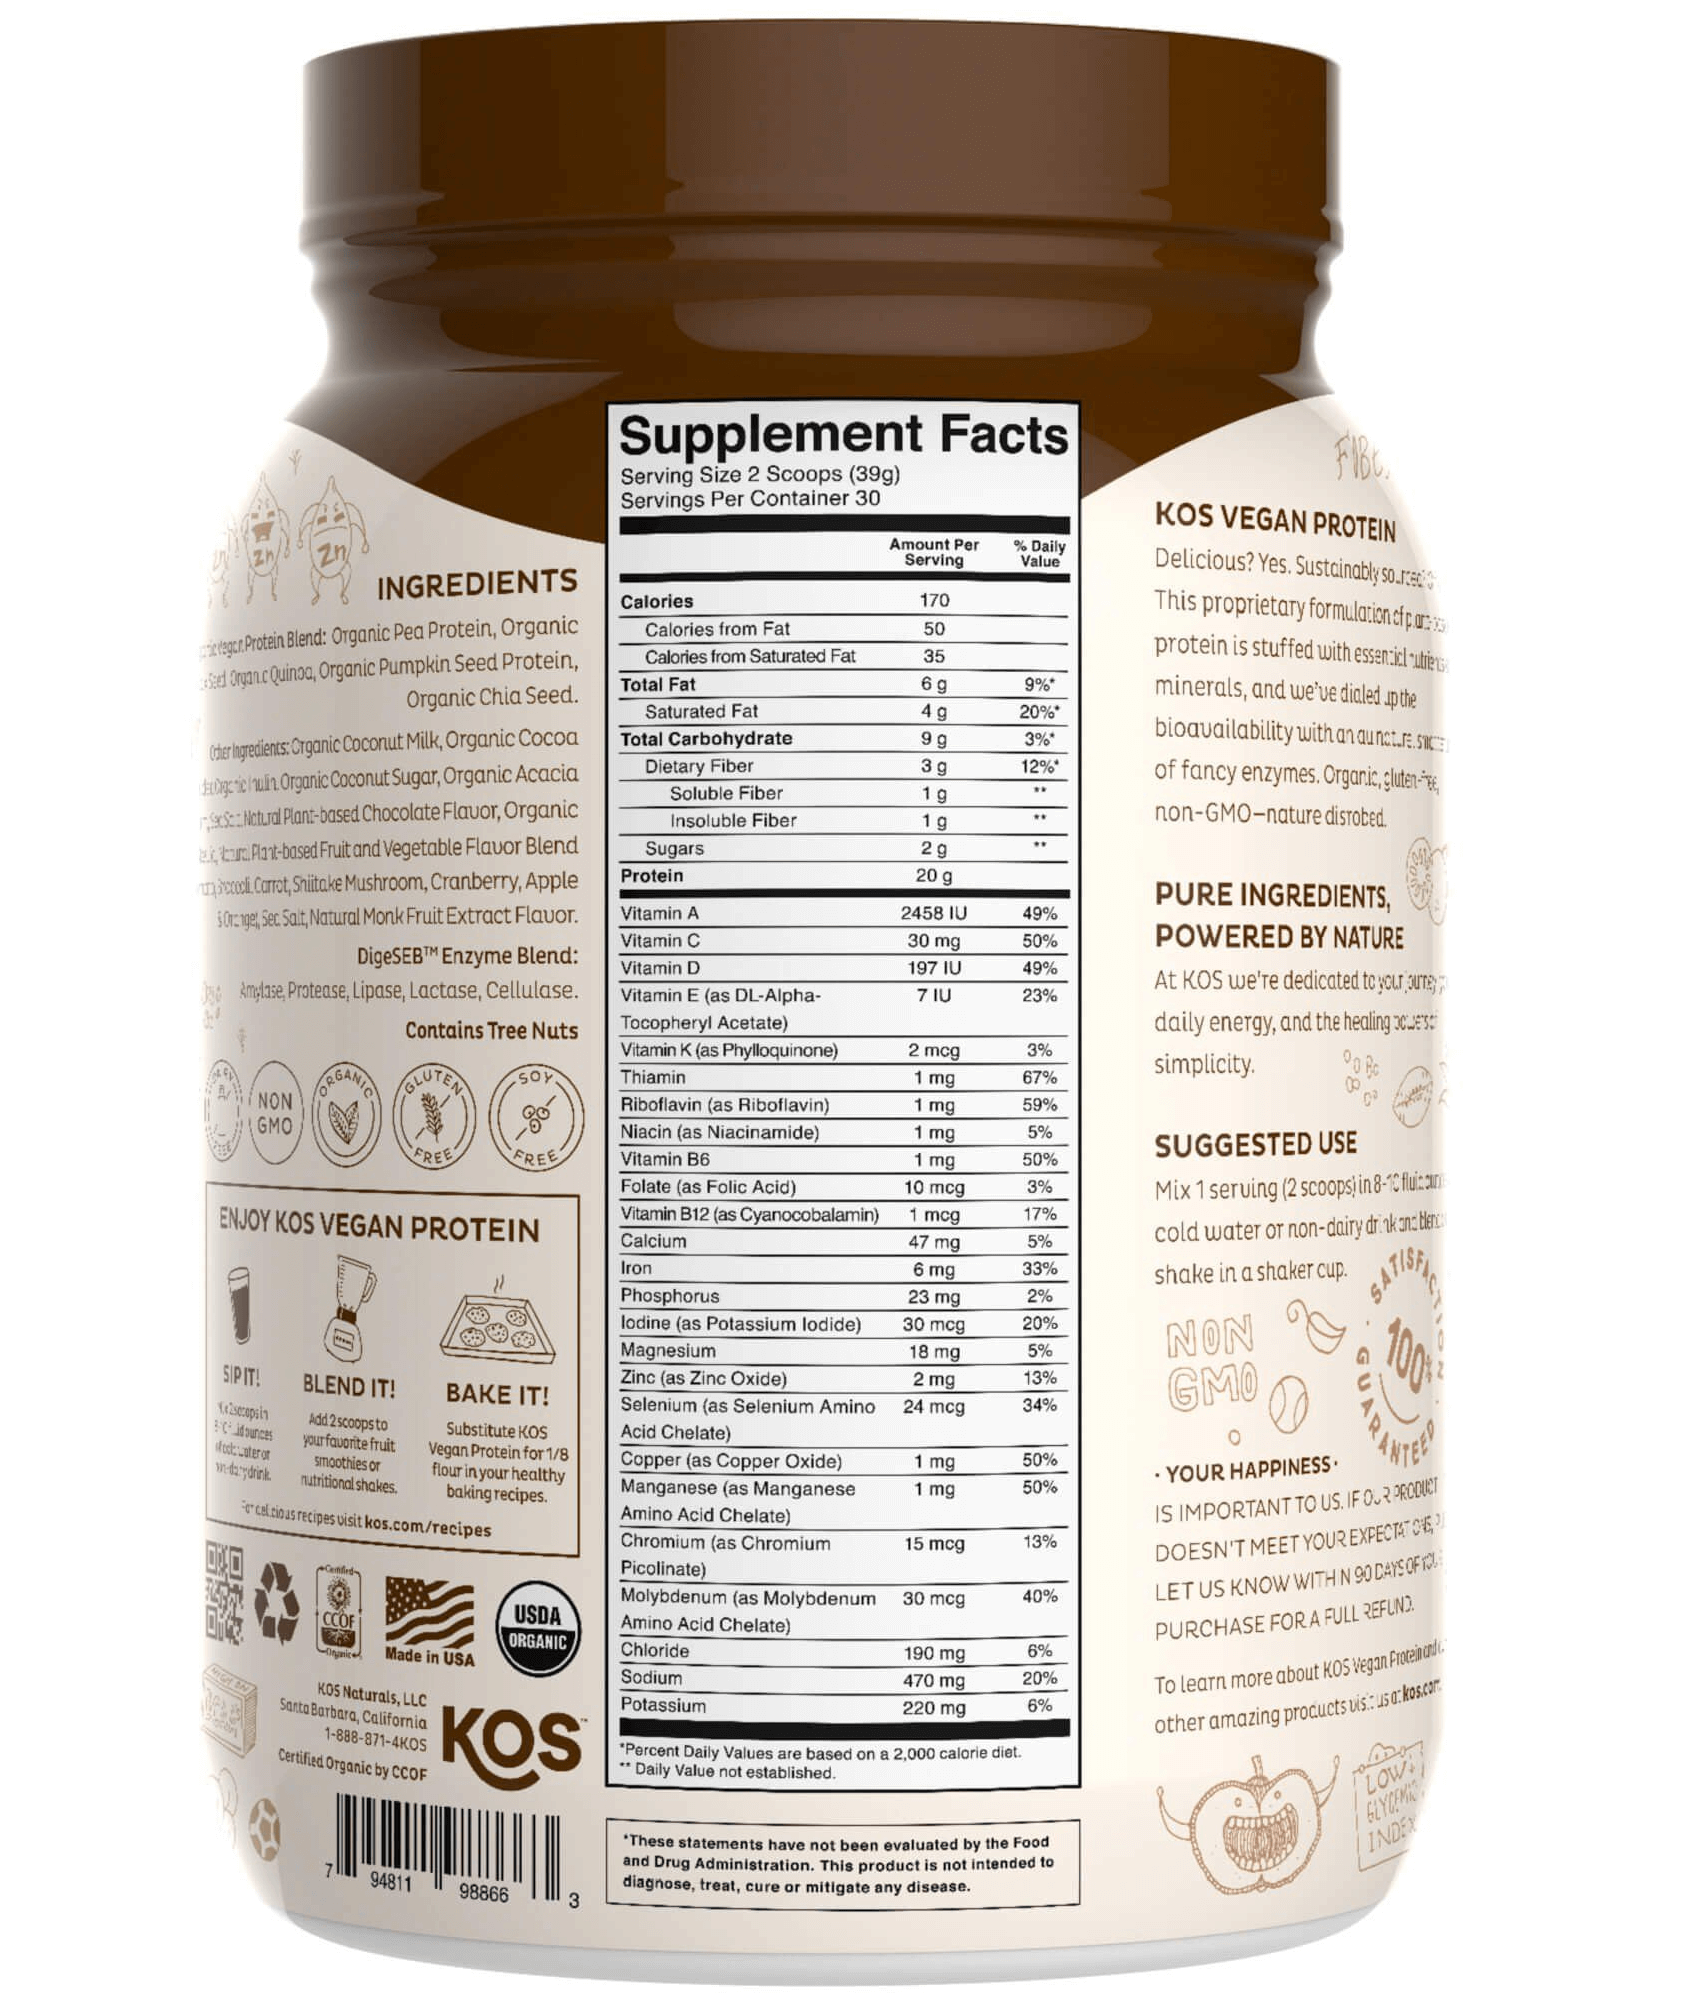 Kos Meal's nutrition label